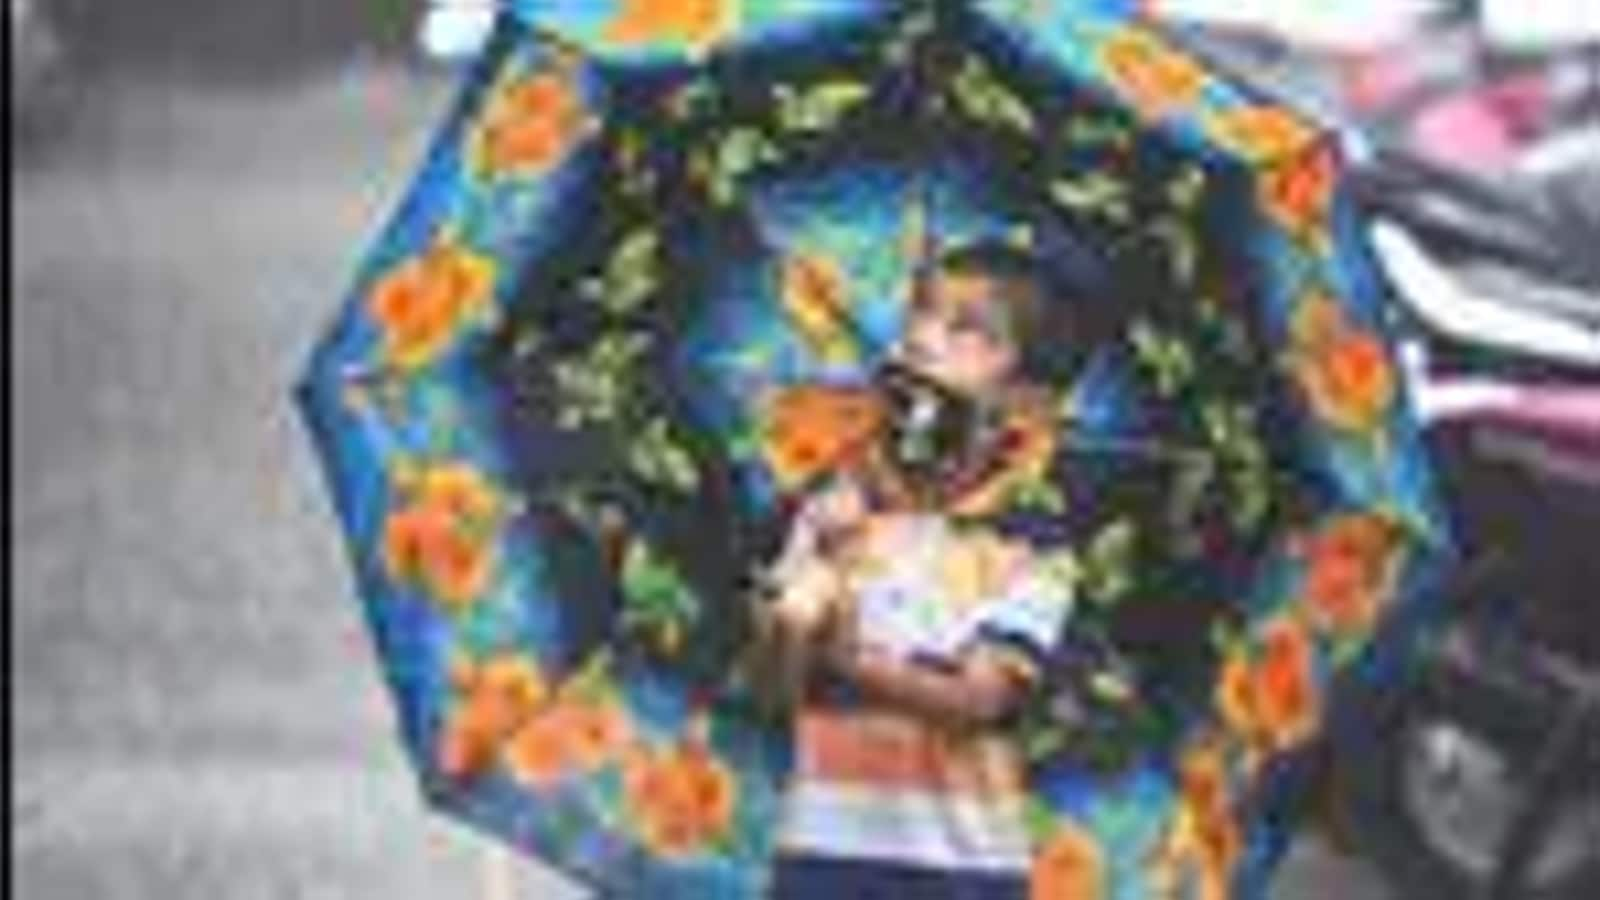 Mumbai likely to witness higher temperatures, thunderstorms this week